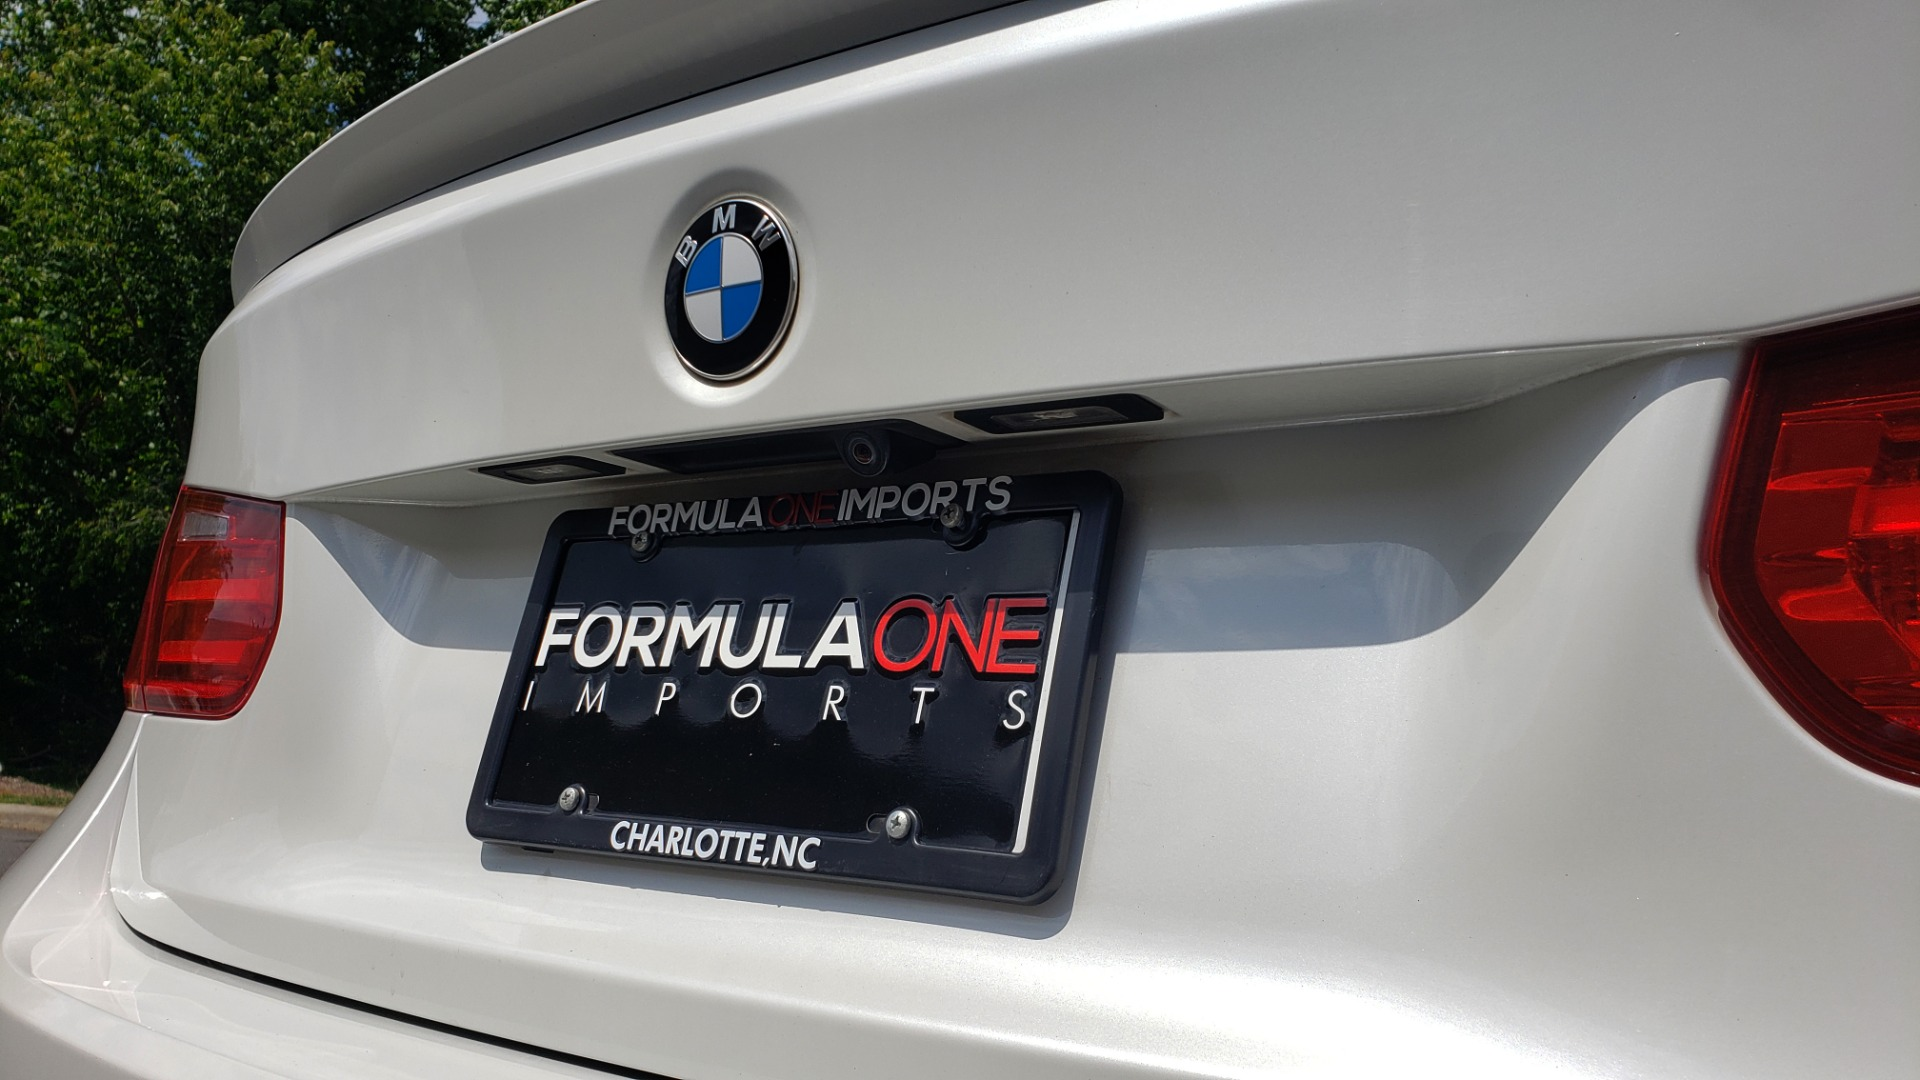 Used 2015 BMW 3 SERIES 328I PREMIUM / NAV / SUNROOF / HTD STS / DRIVER ASST / REARVIEW for sale Sold at Formula Imports in Charlotte NC 28227 28